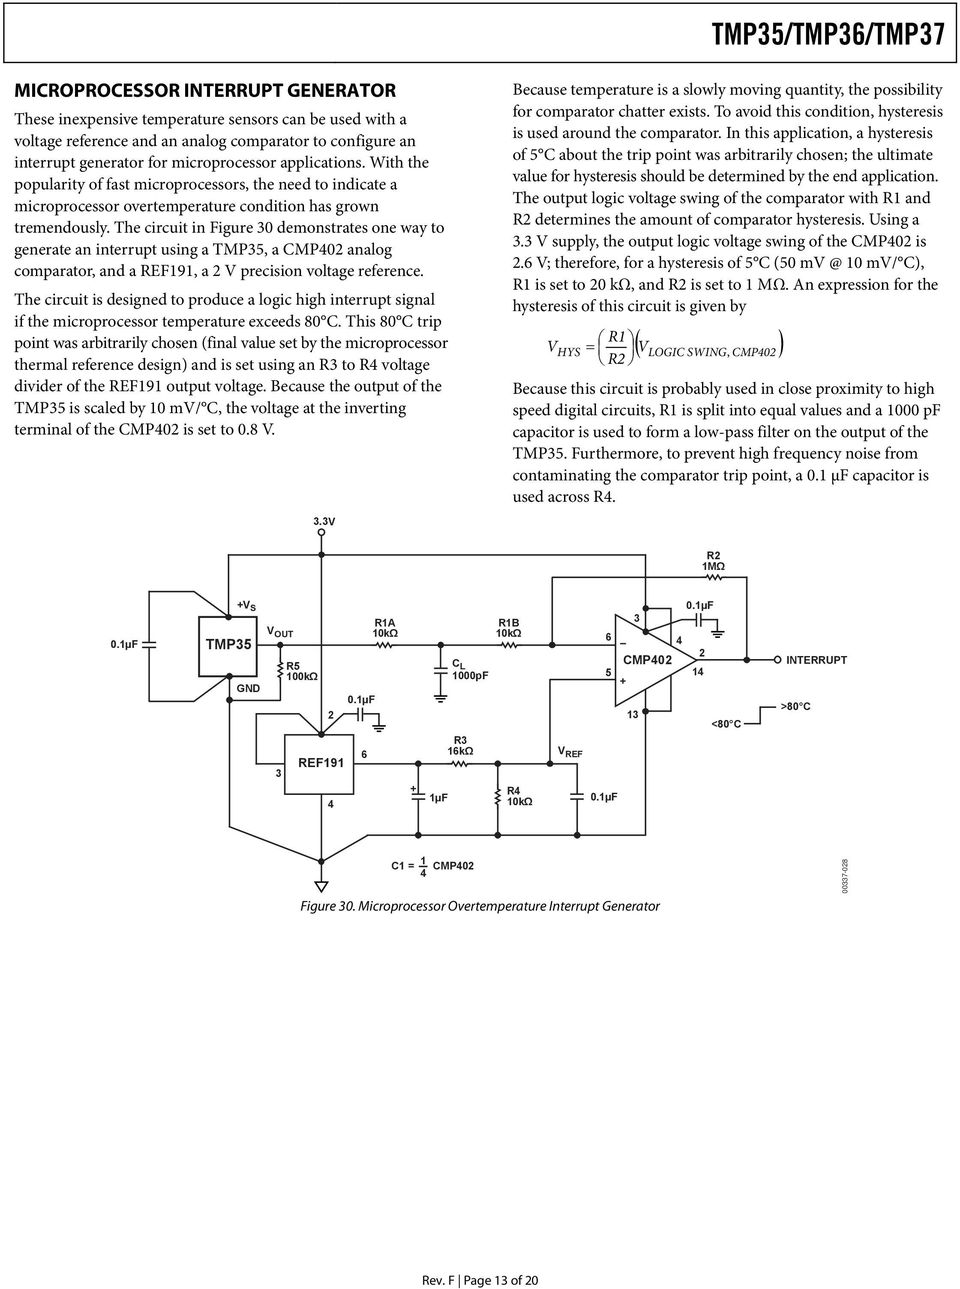 Low Voltage Temperature Sensors Tmp35 Tmp36 Tmp37 Pdf Modify Old Battery Charger Into Automatic Using Power Scr And Ca723 The Circuit In Figure Demonstrates One Way To Generate An Interrupt A Tmp5